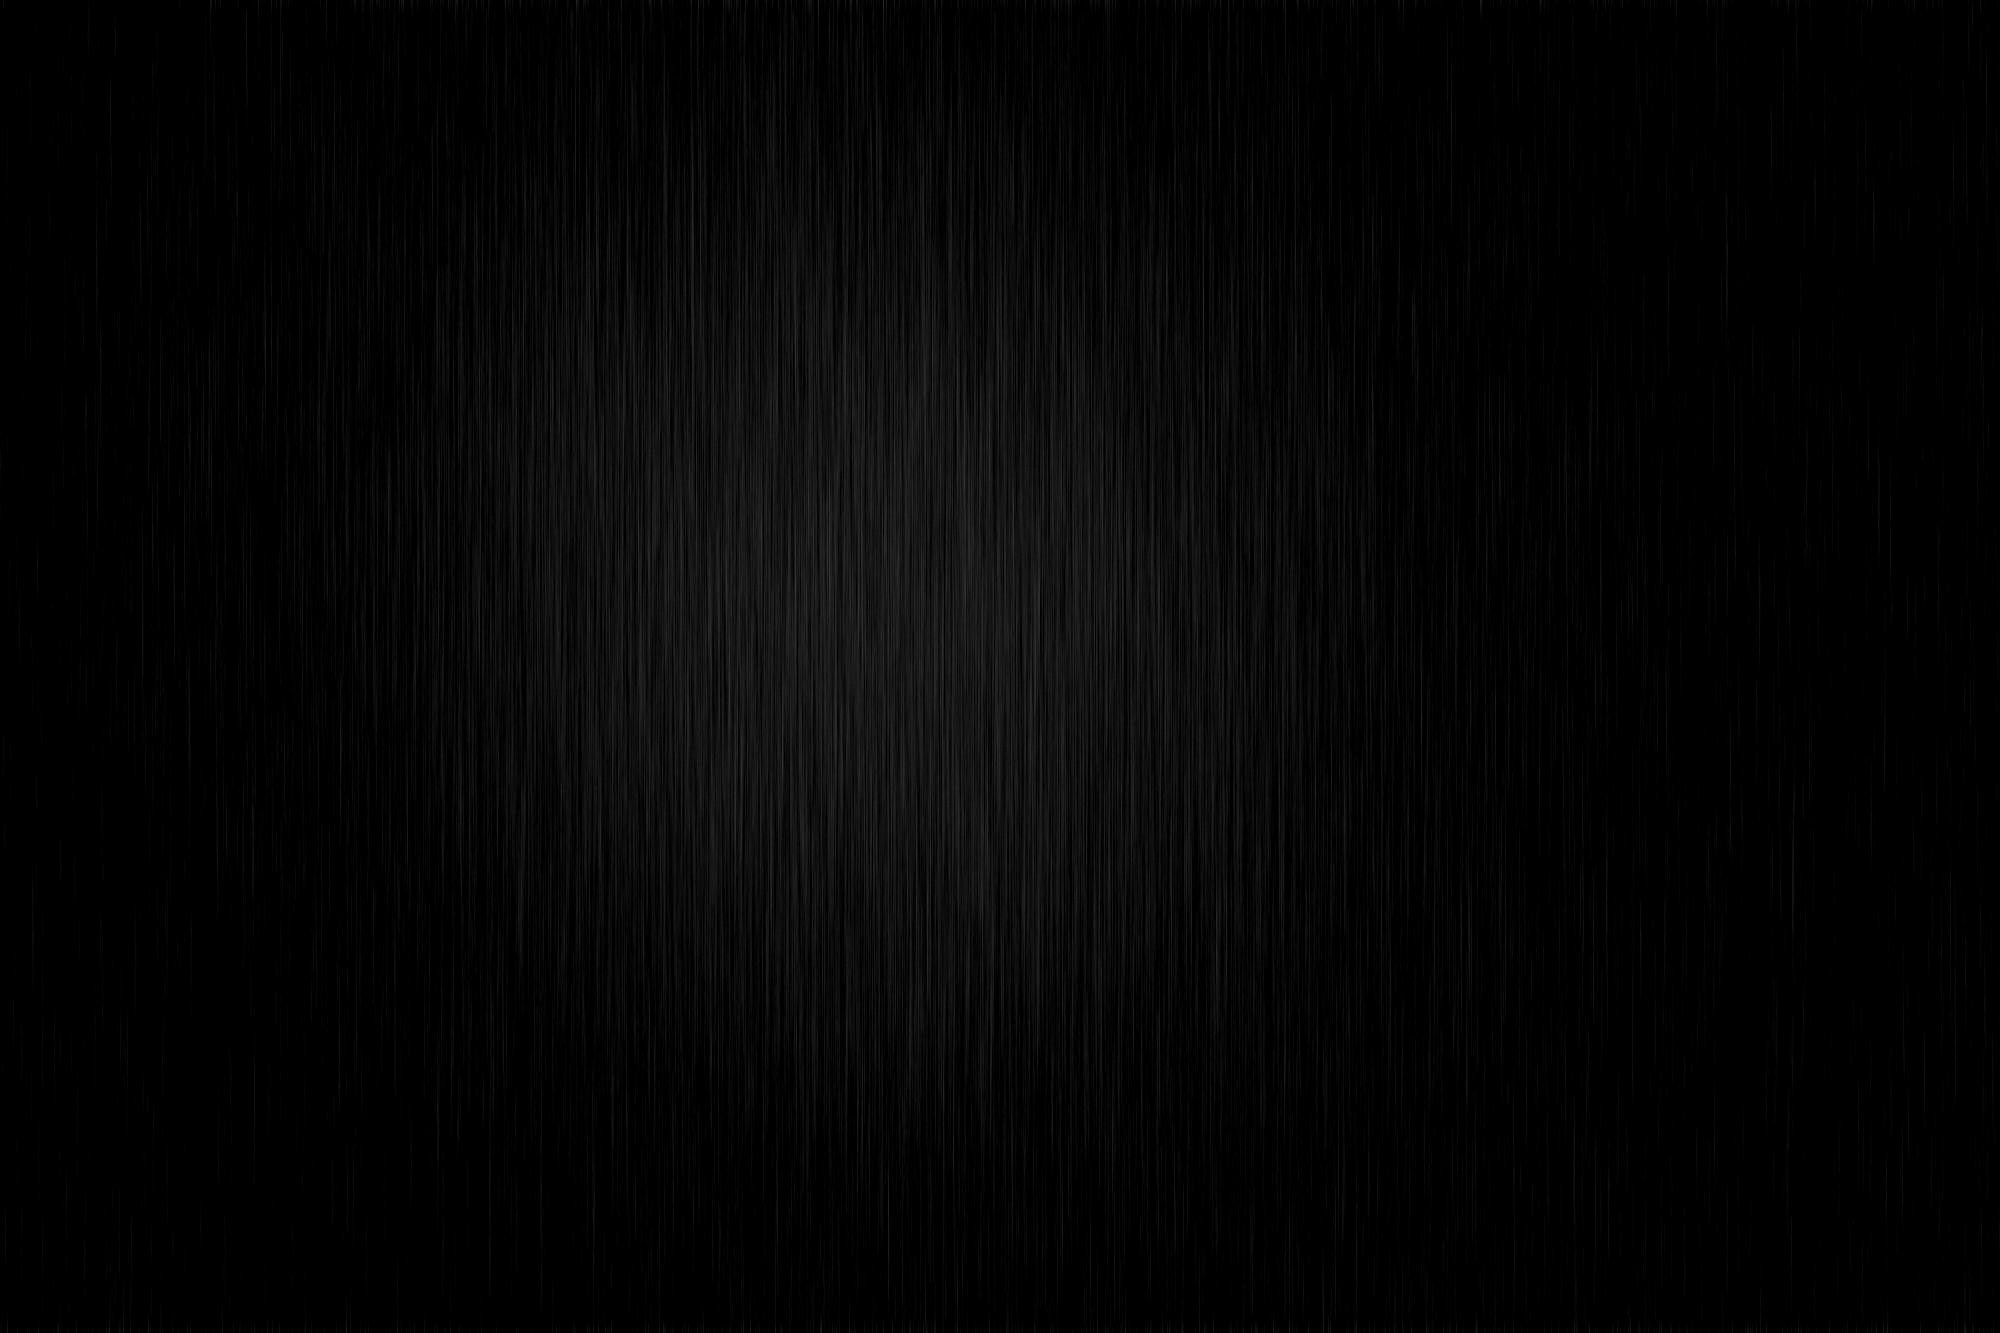 solid black wallpaper android free download 2000a—1333